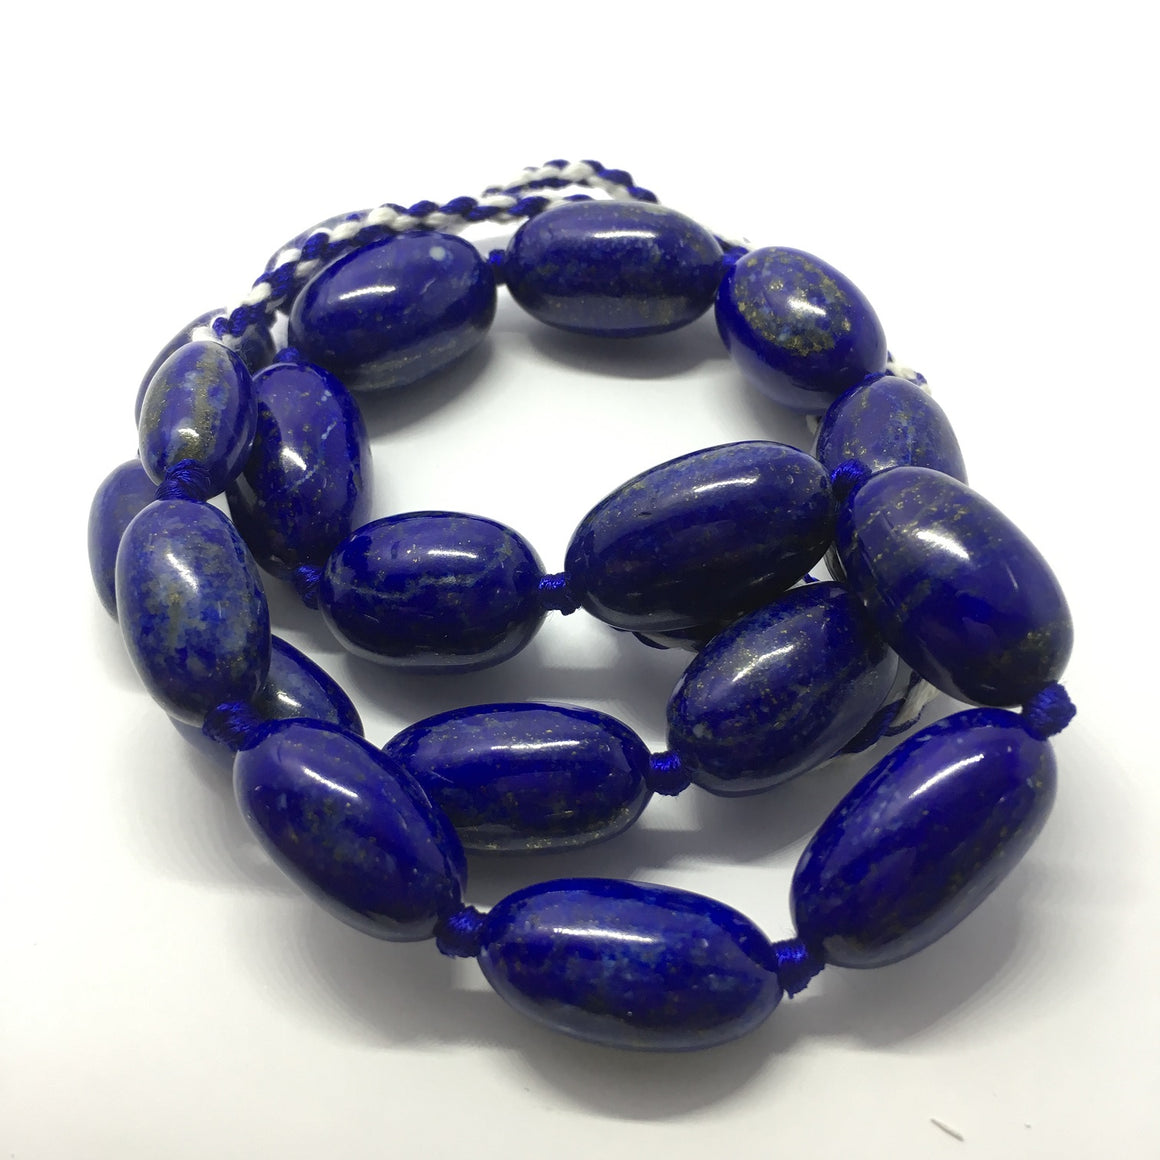 Lapis Lazuli Necklace - Lapis Necklace 19 Oval Beads - 644.5 ct